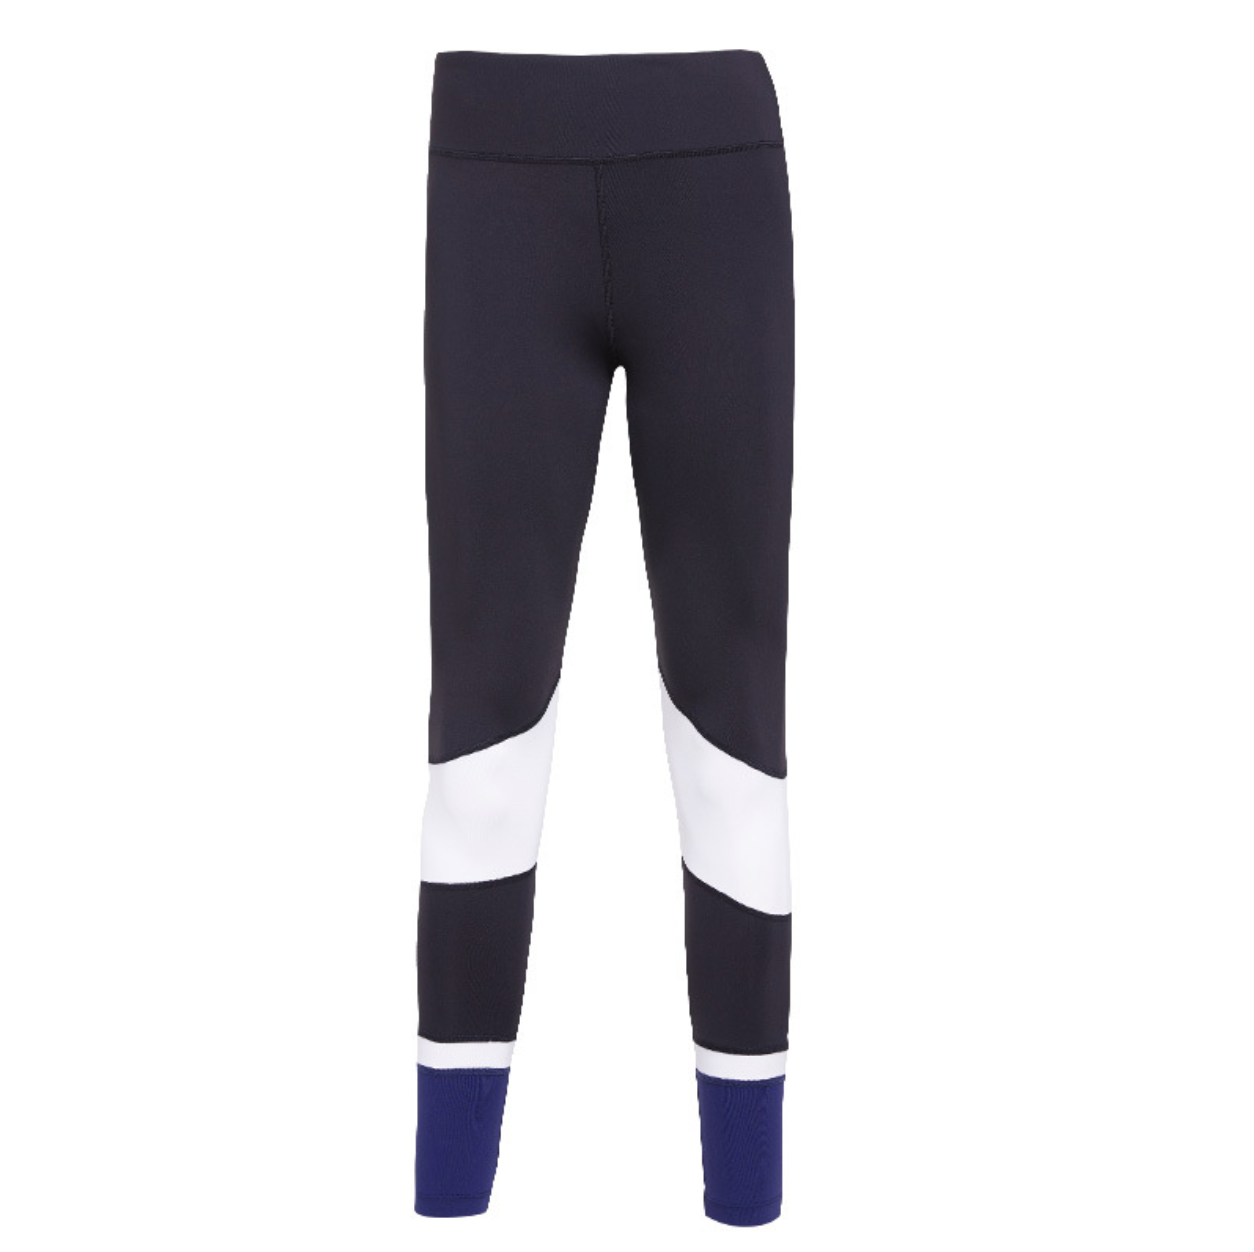 Sexy Two Tone Gym Wear Work Out Sports Legging Yoga Pants